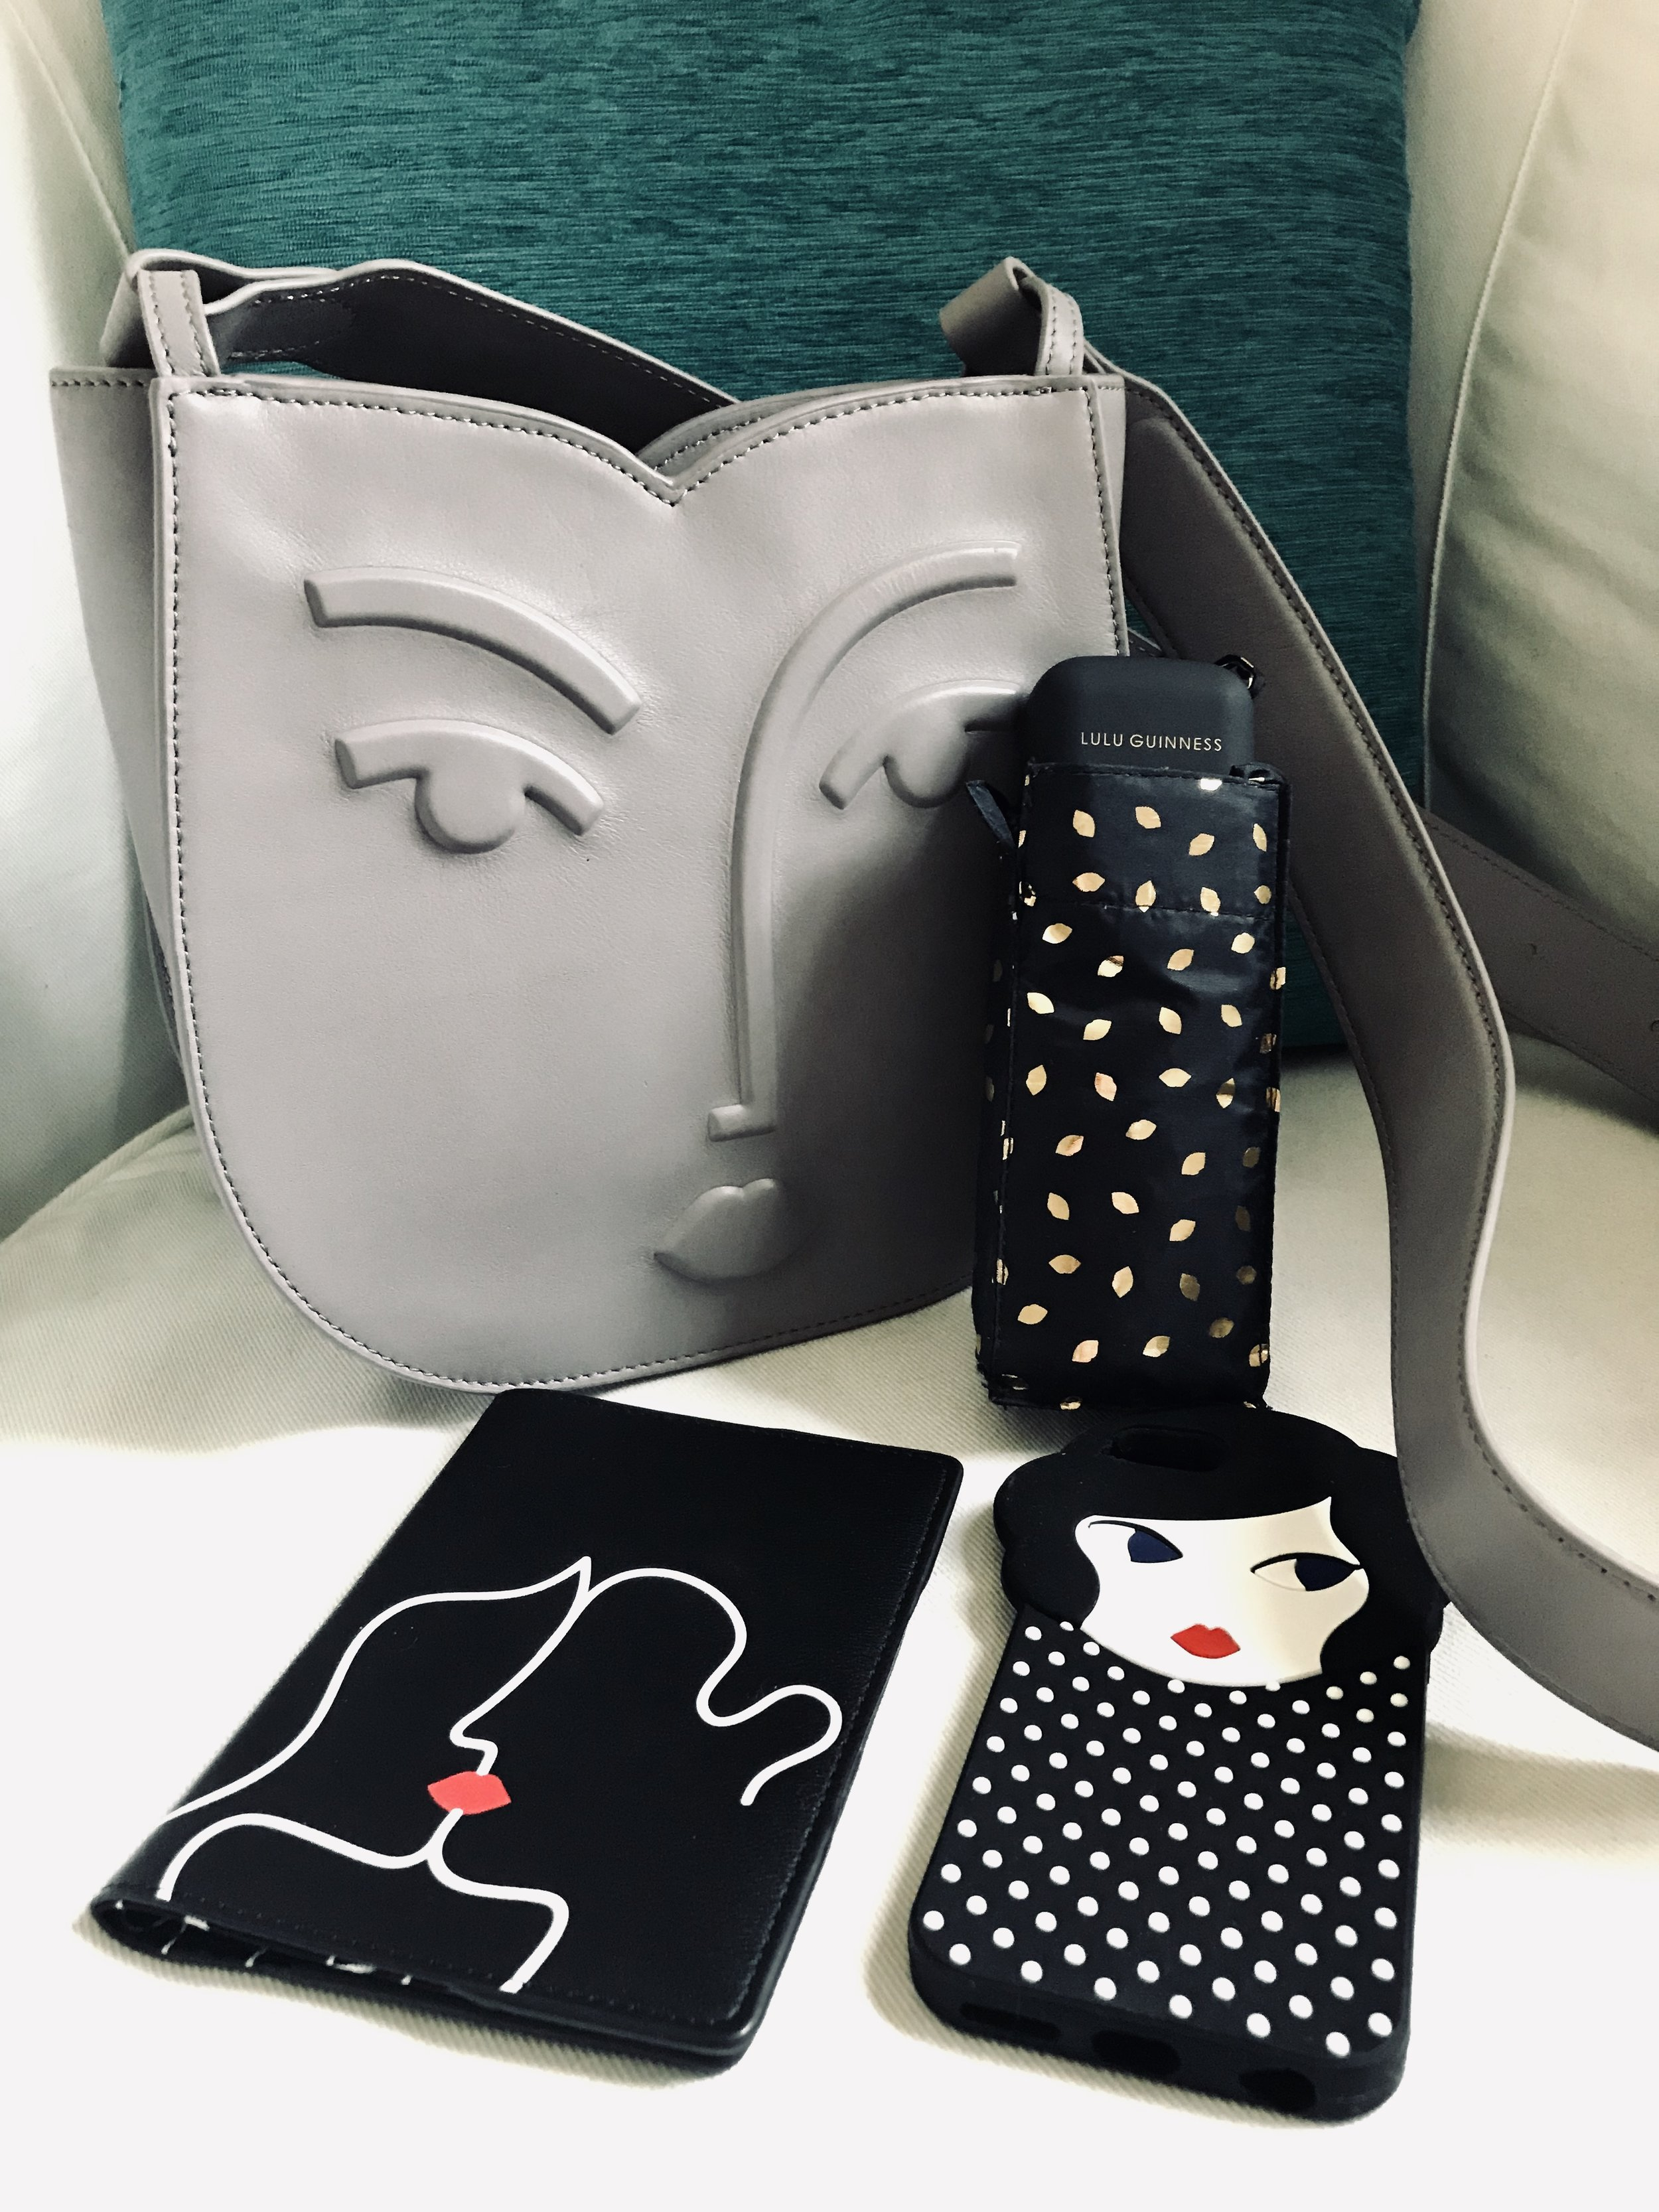 I think I have a thing for Lulu Guinness… (Diary in the handbag and I also forgot my Lulu Guinness T-shirt! Menopause brain at work!!)